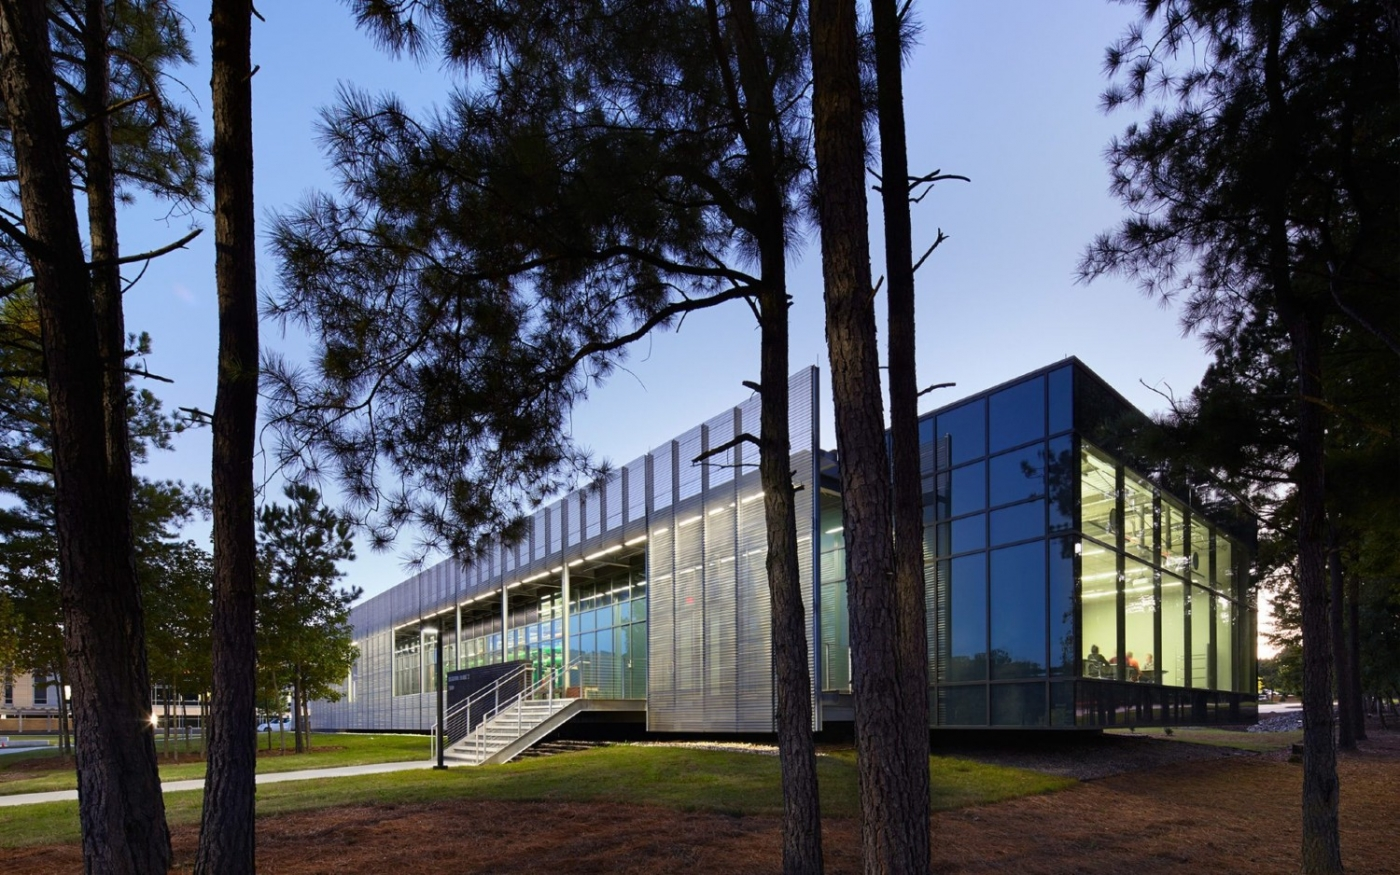 10 Exciting Architectural Buildings From Clark Nexsen ft clark nexsen 10 Exciting Architectural Buildings From Clark Nexsen 10 Exciting Architectural Buildings From Clark Nexsen ft 1400x875